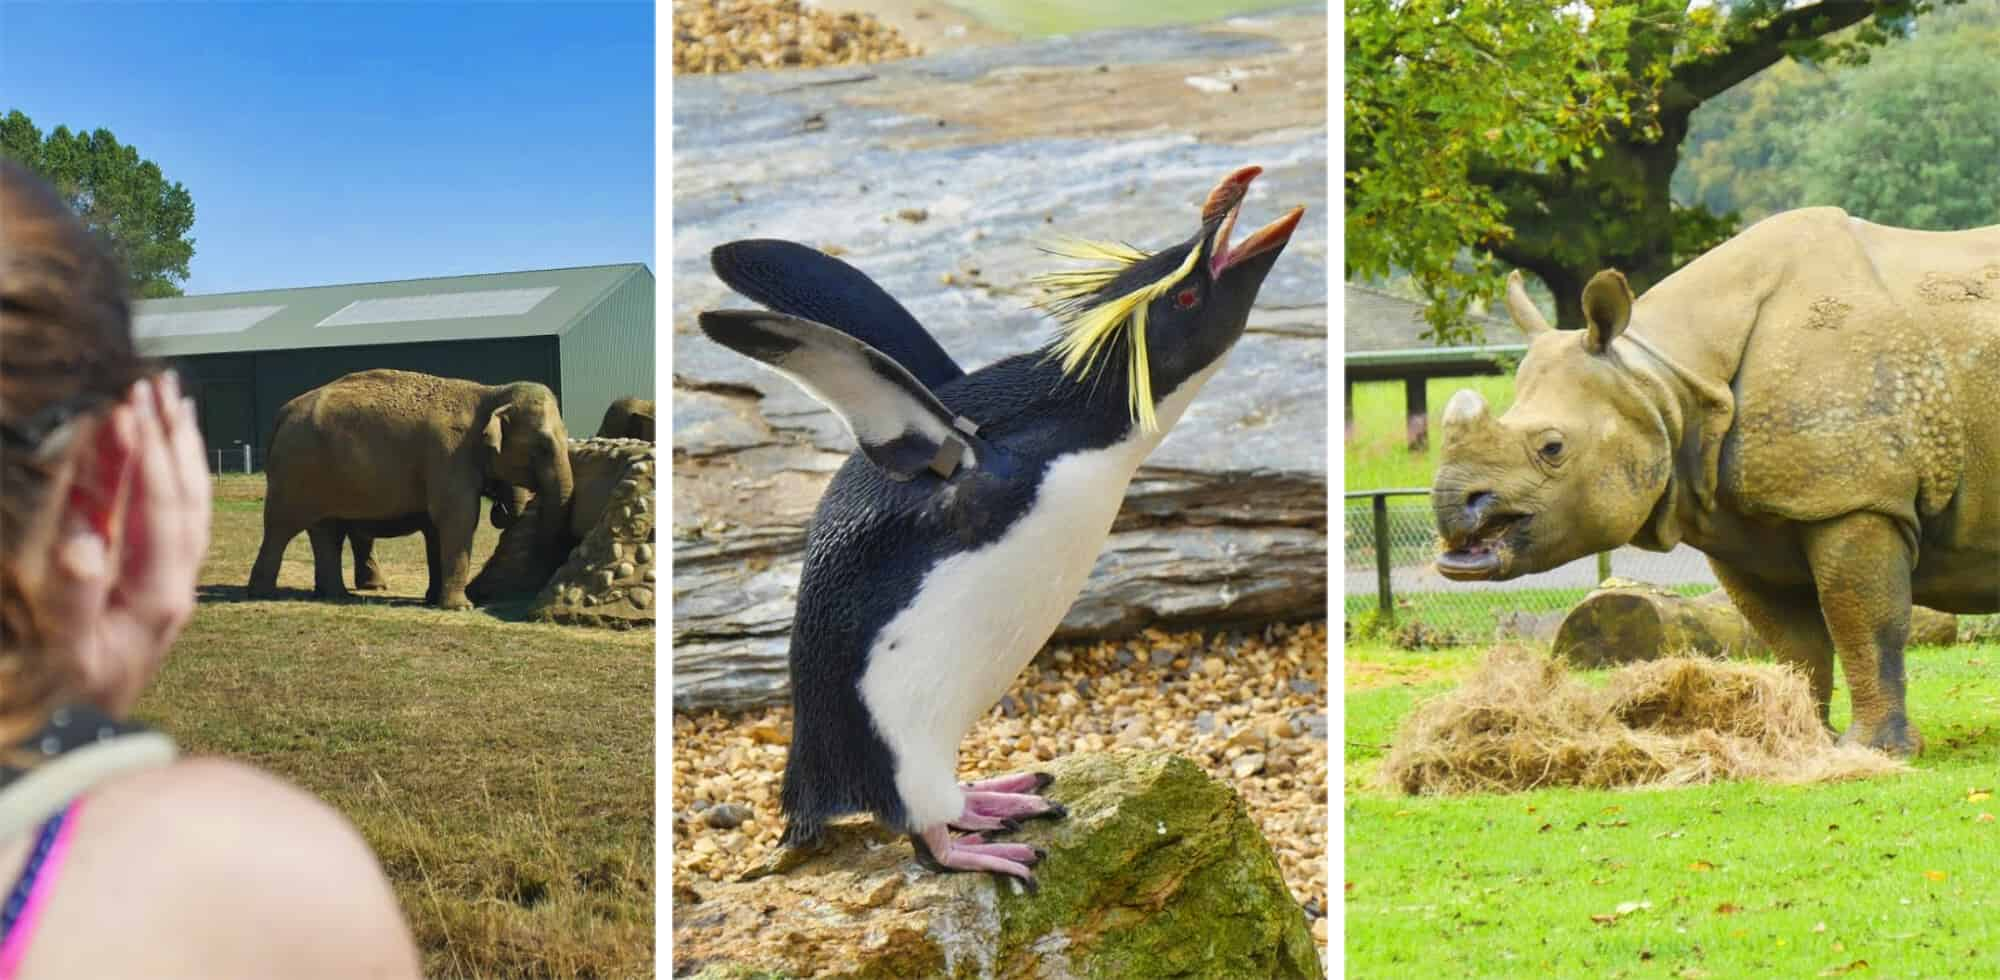 (Honest) ZSL Whipsnade Zoo Review: The Ultimate Guide for a Perfect Day Out via @girlsgonelondon